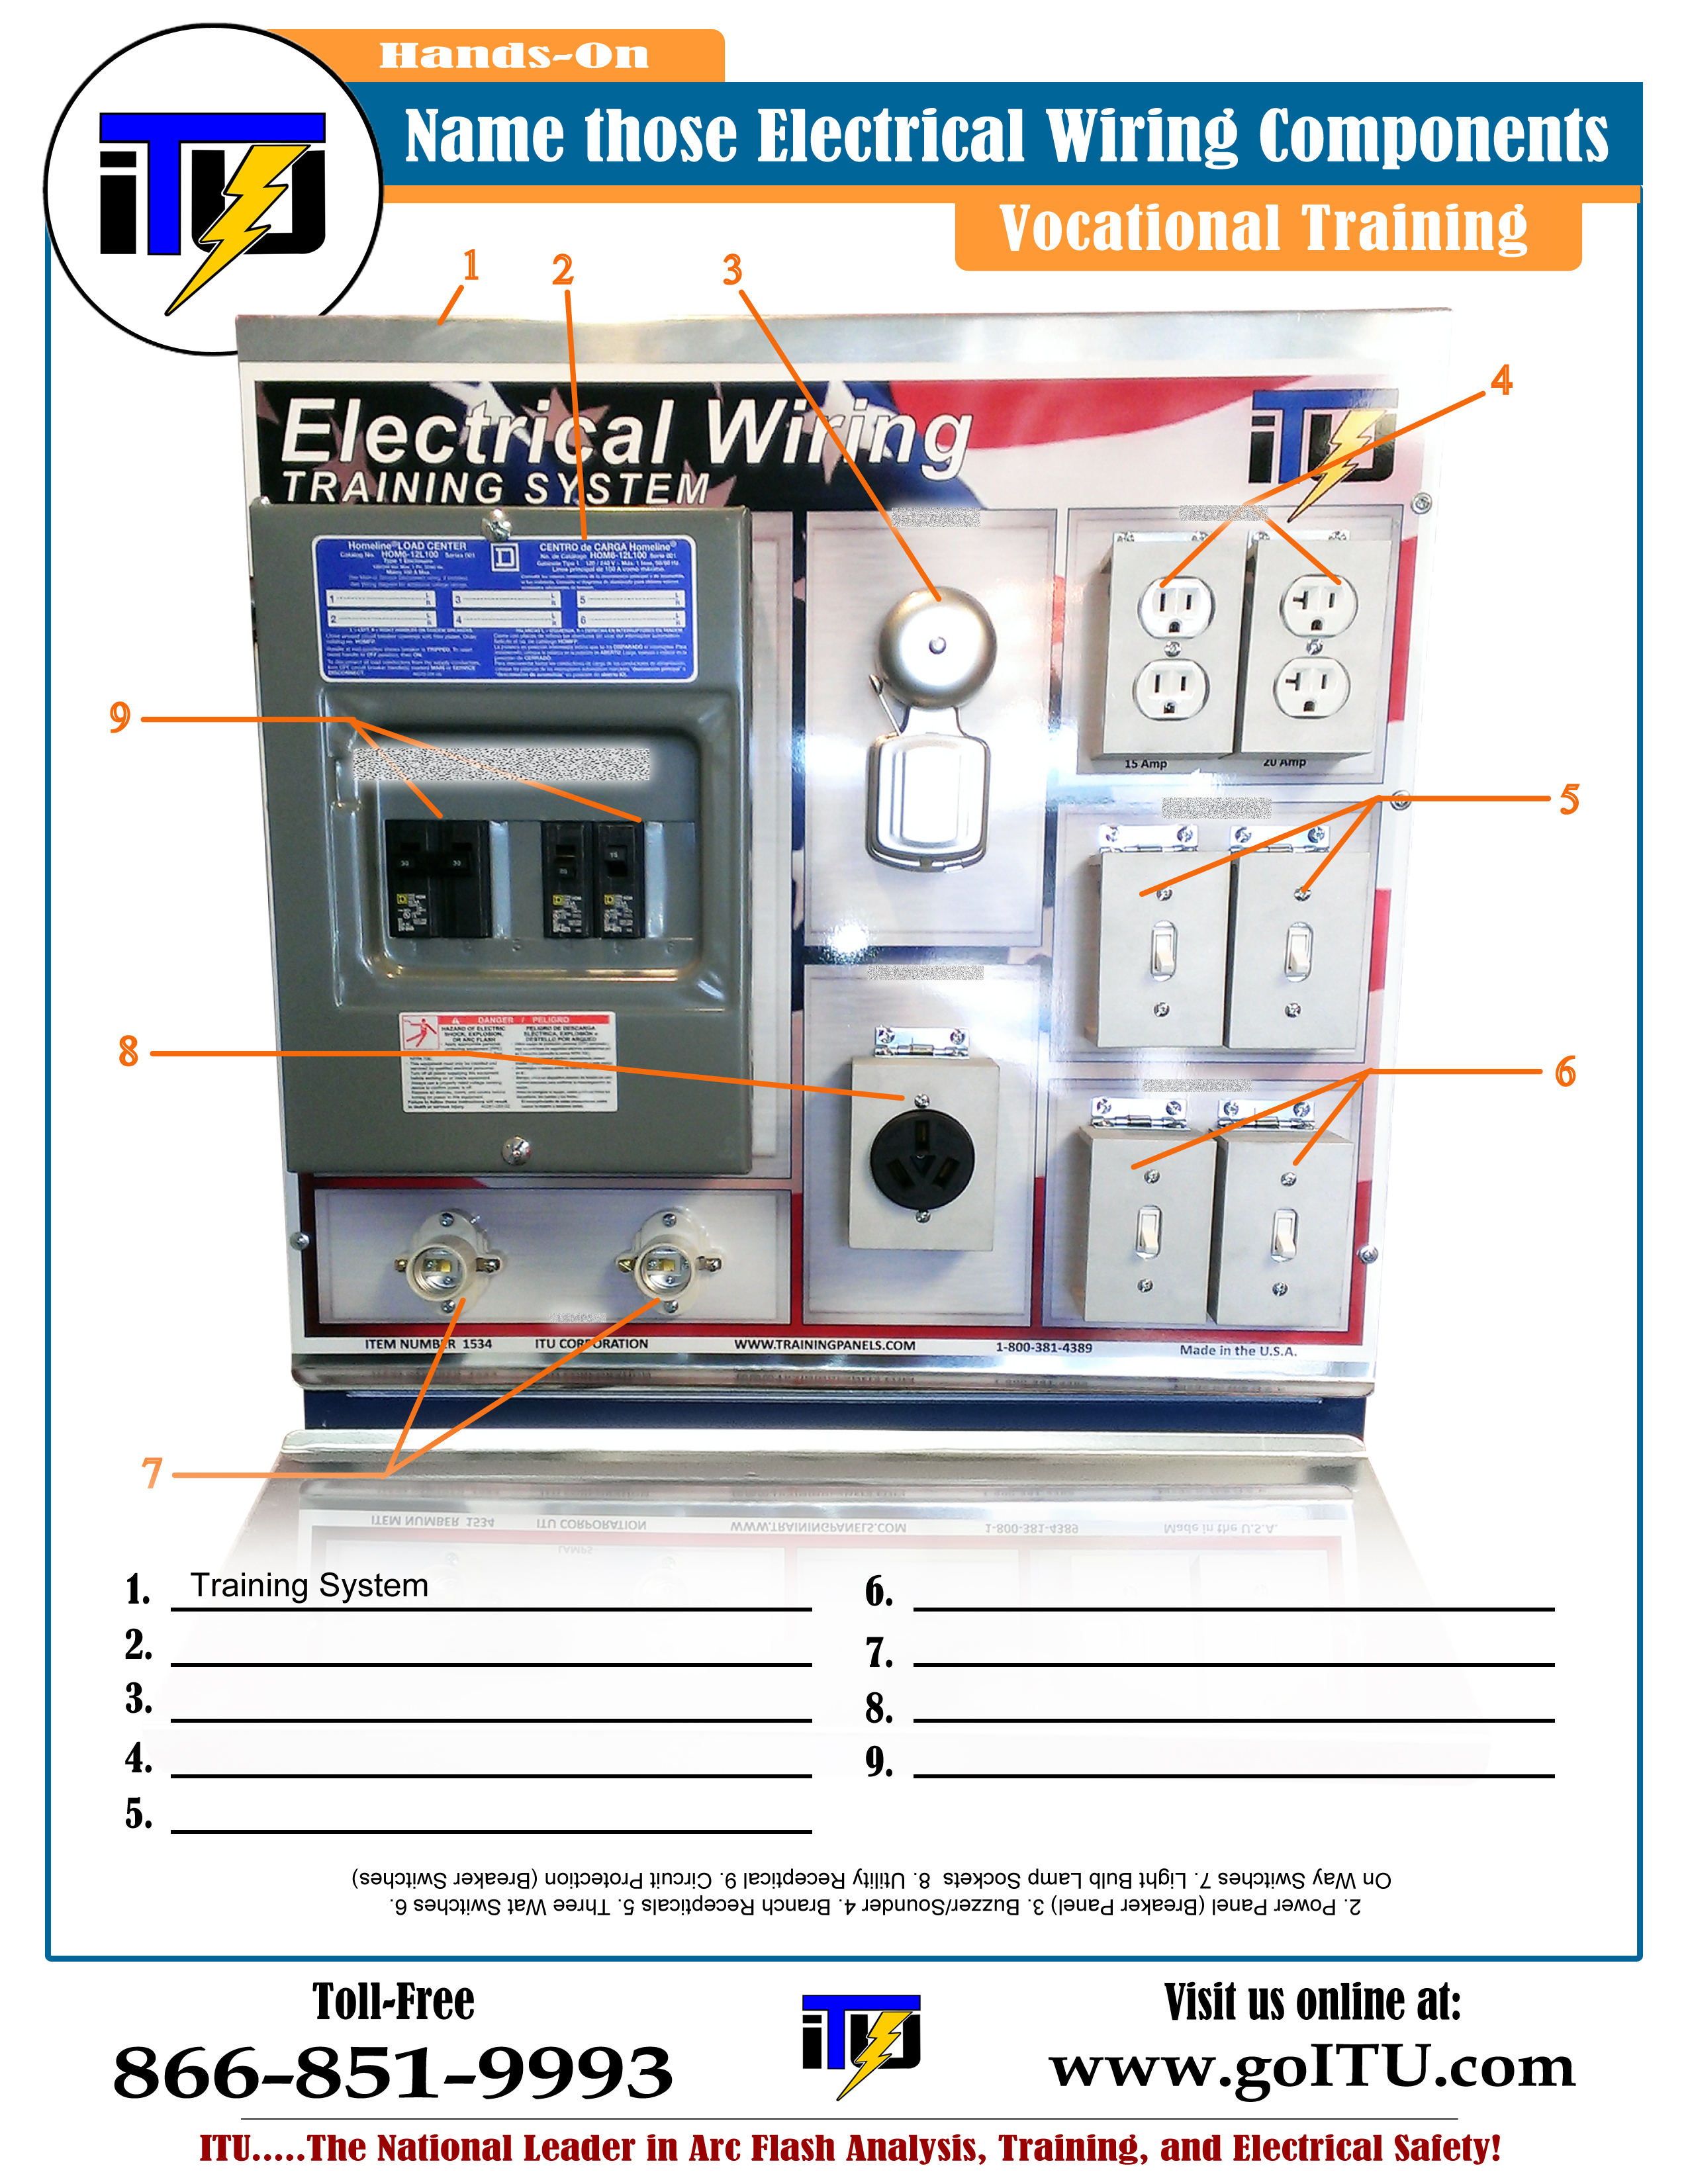 Electrical Wiring Component Guide (Free) | Free Safety & Training ...